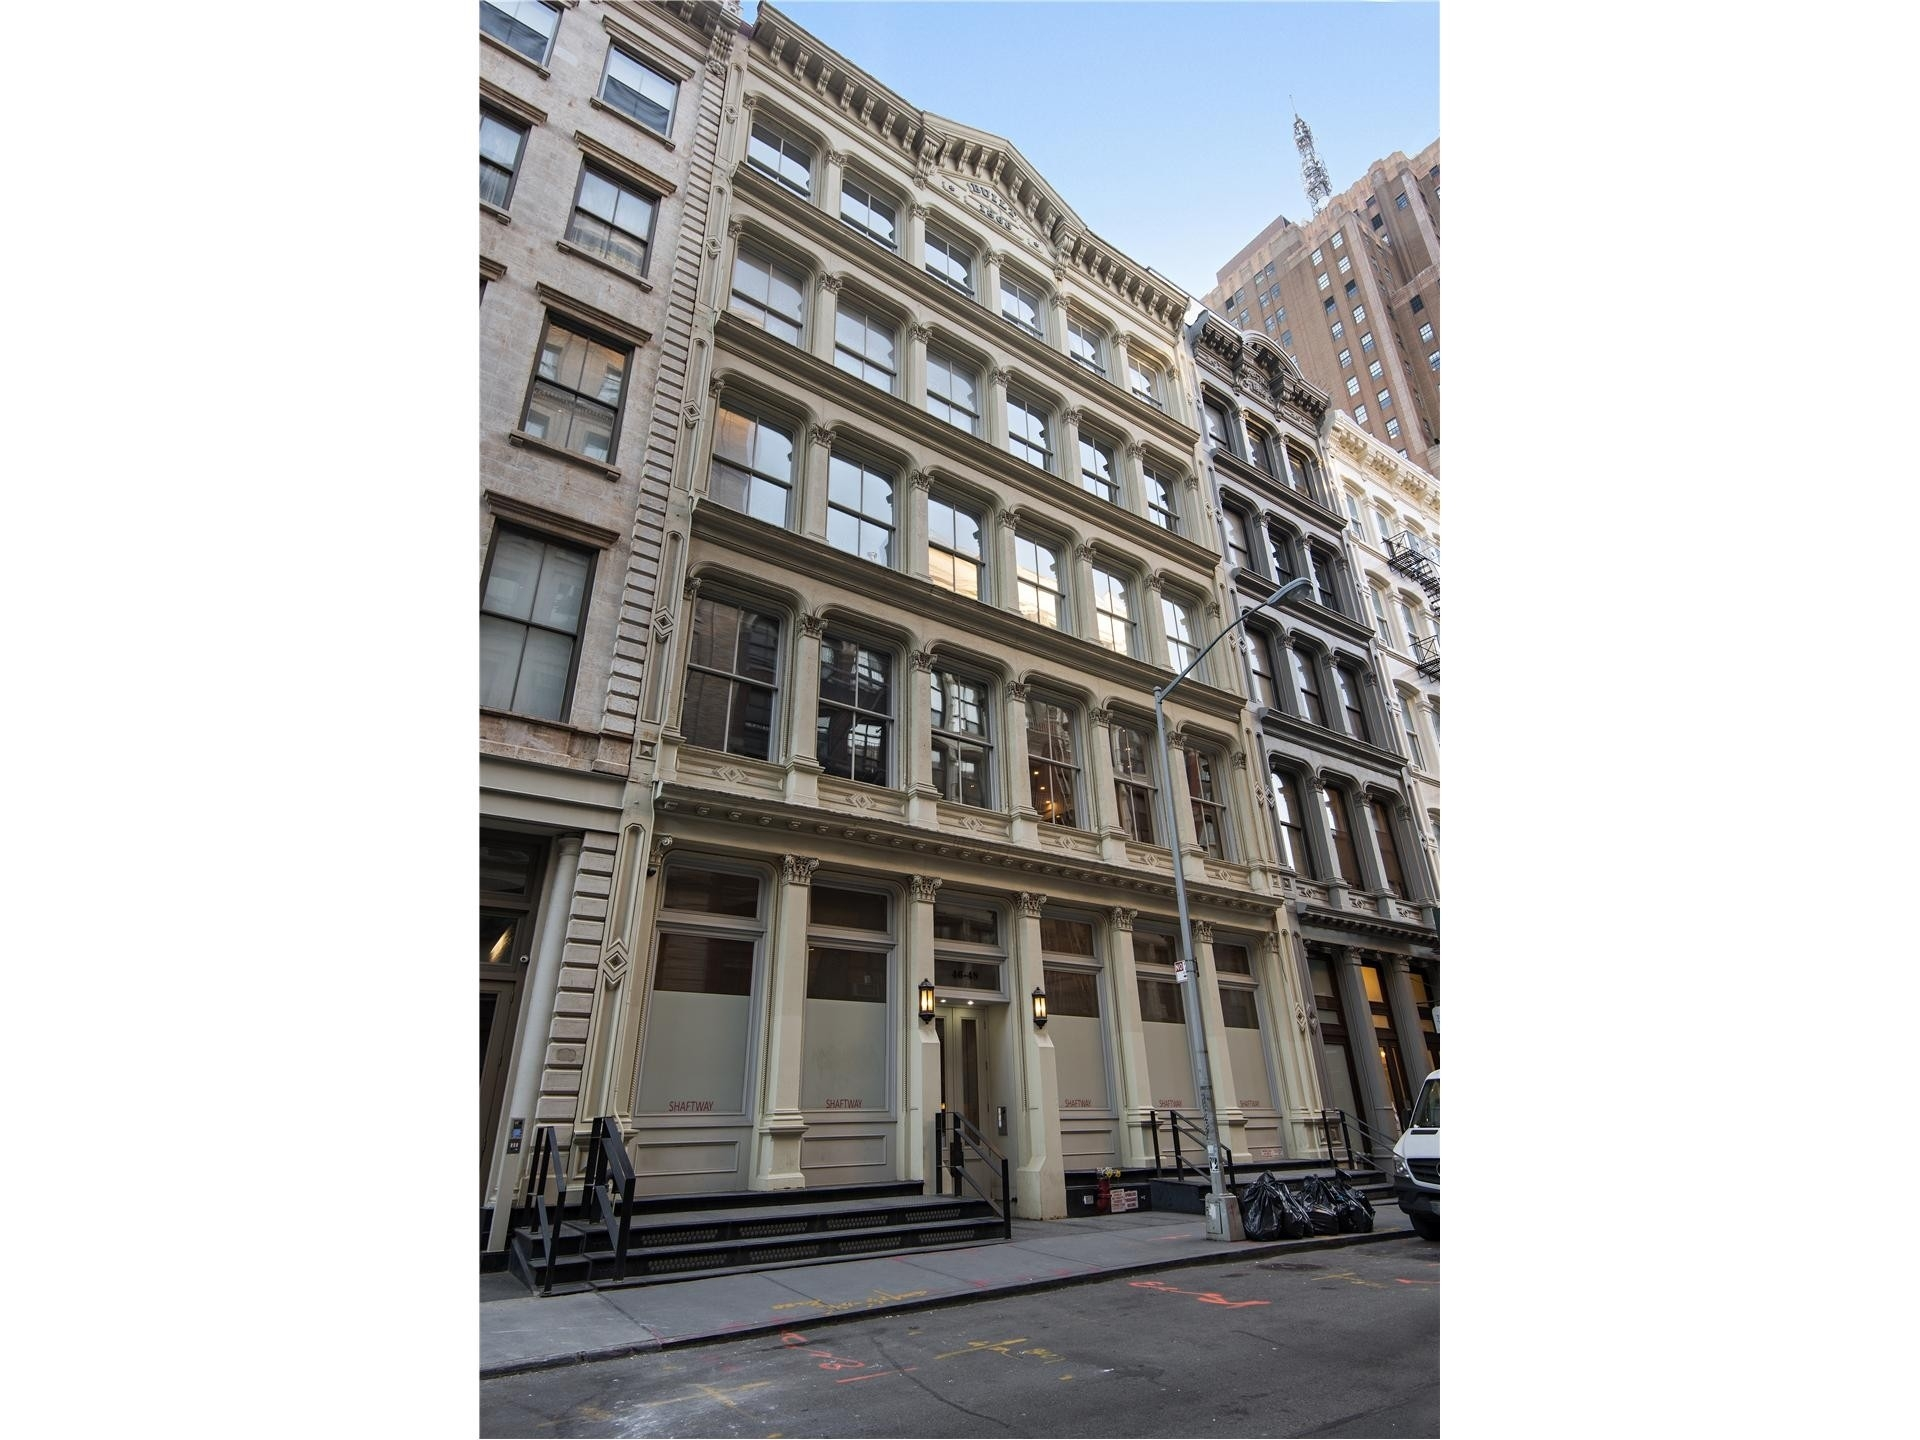 1. bâtiment à 46 Lispenard St, Downtown Manhattan, New York, NY